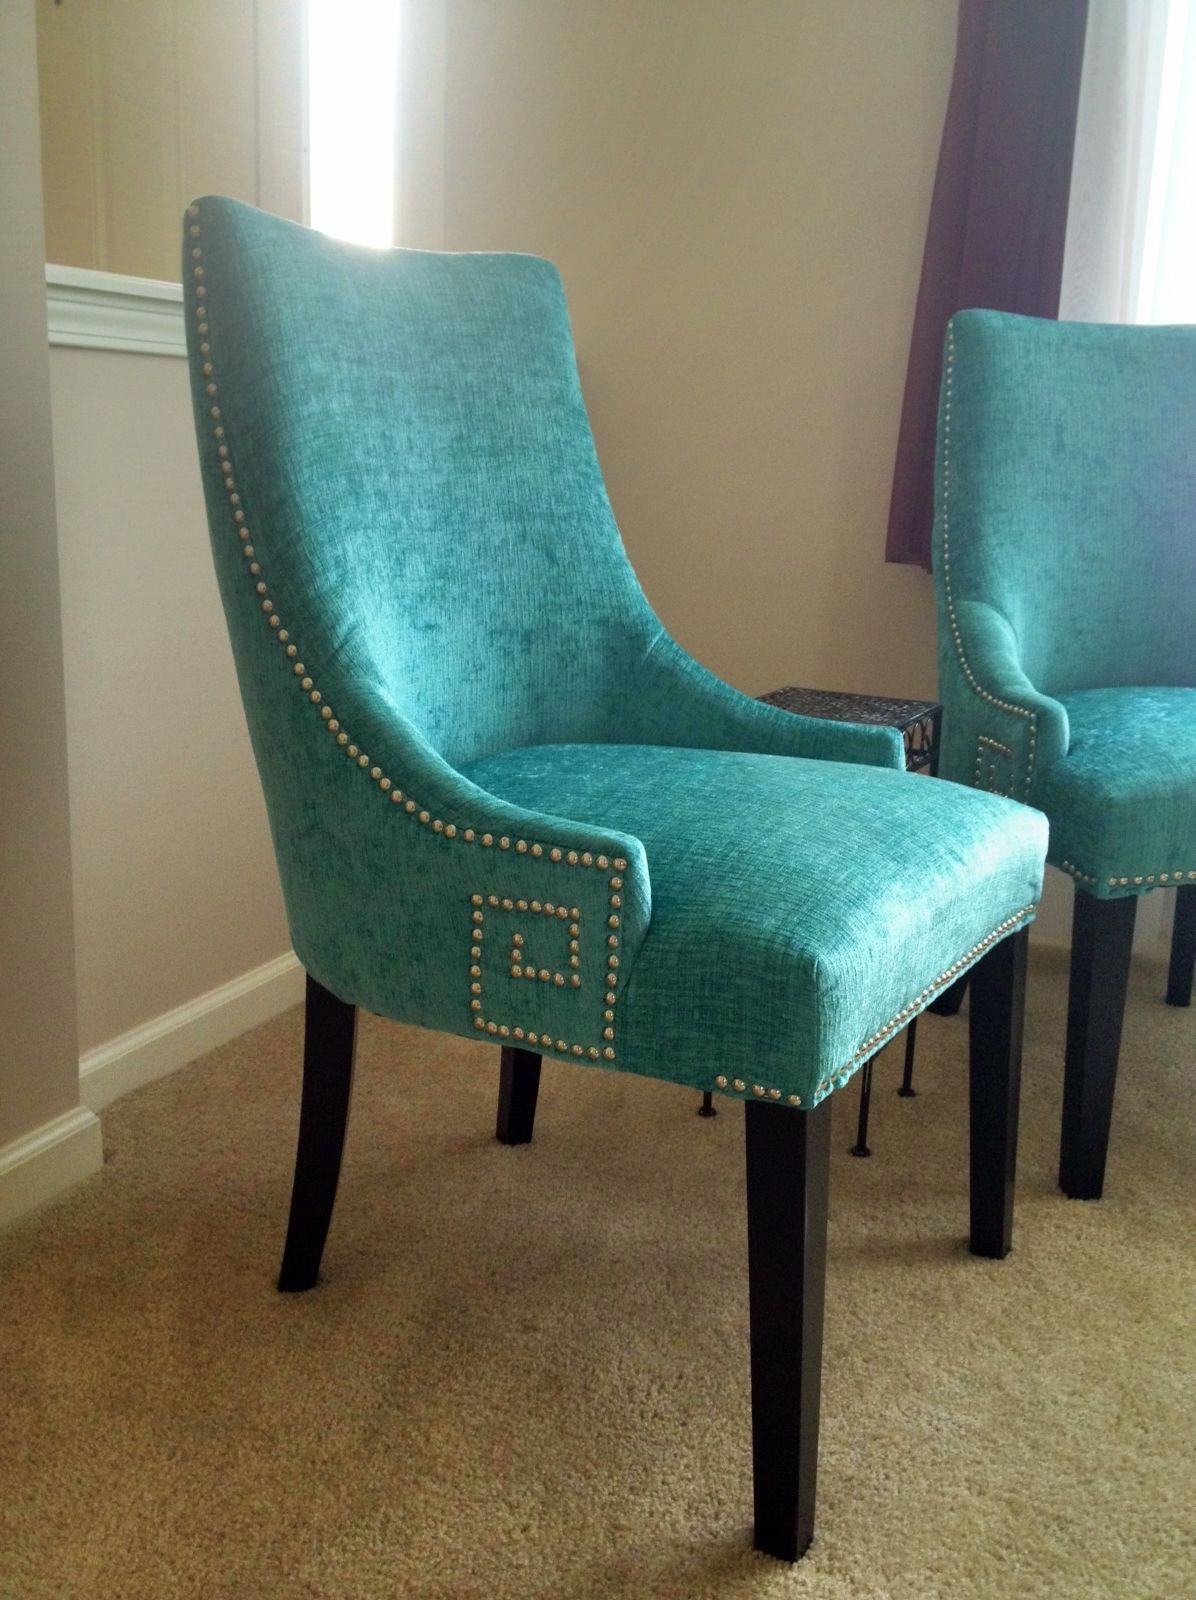 Folding Chairs With Padded Seats Spoolchair Turquoise Dining Chairs Dining Chairs Blue Dining Room Chairs